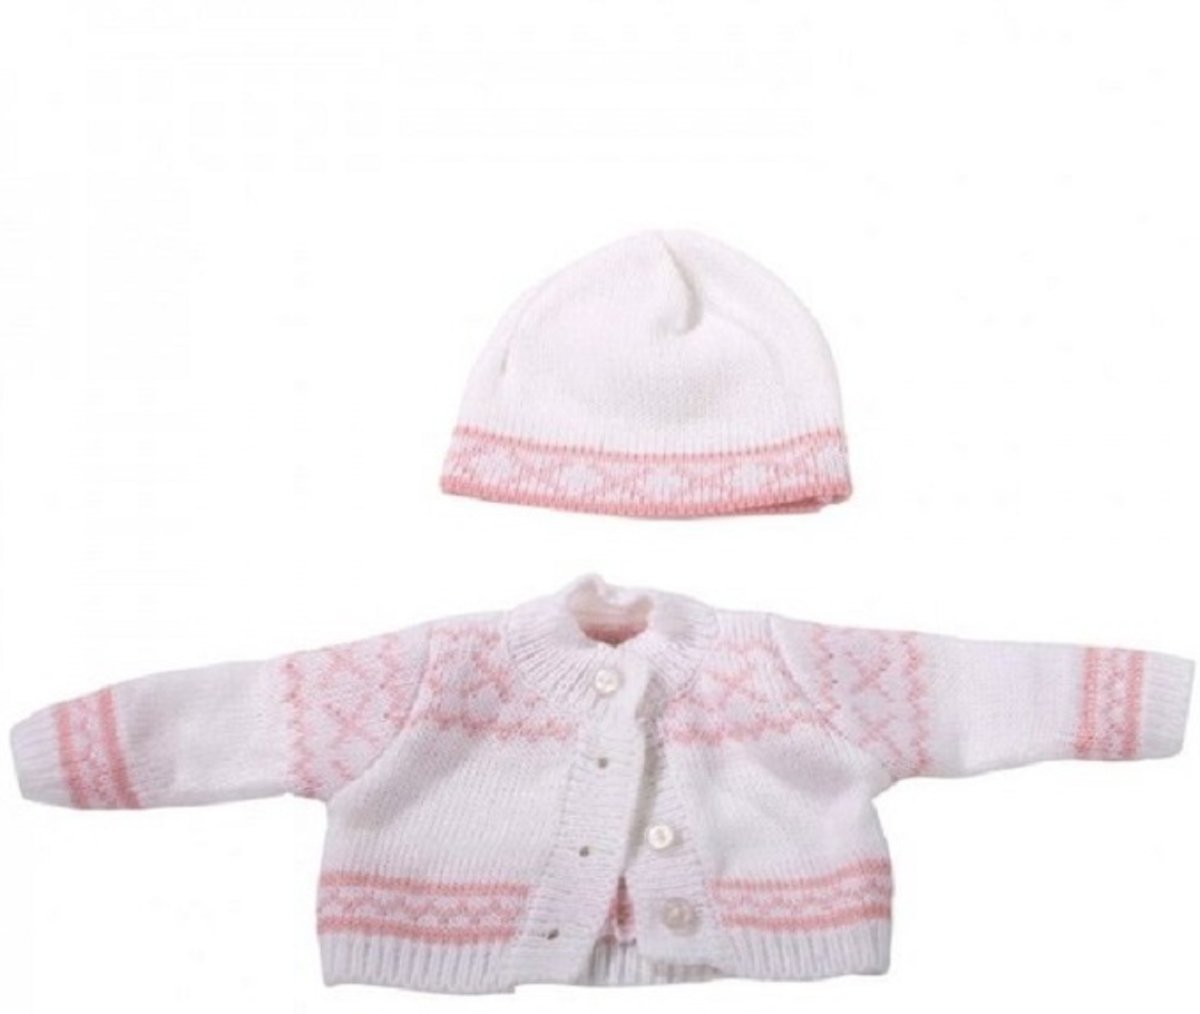 Götz BC Knitted ensemble, Pink Norway